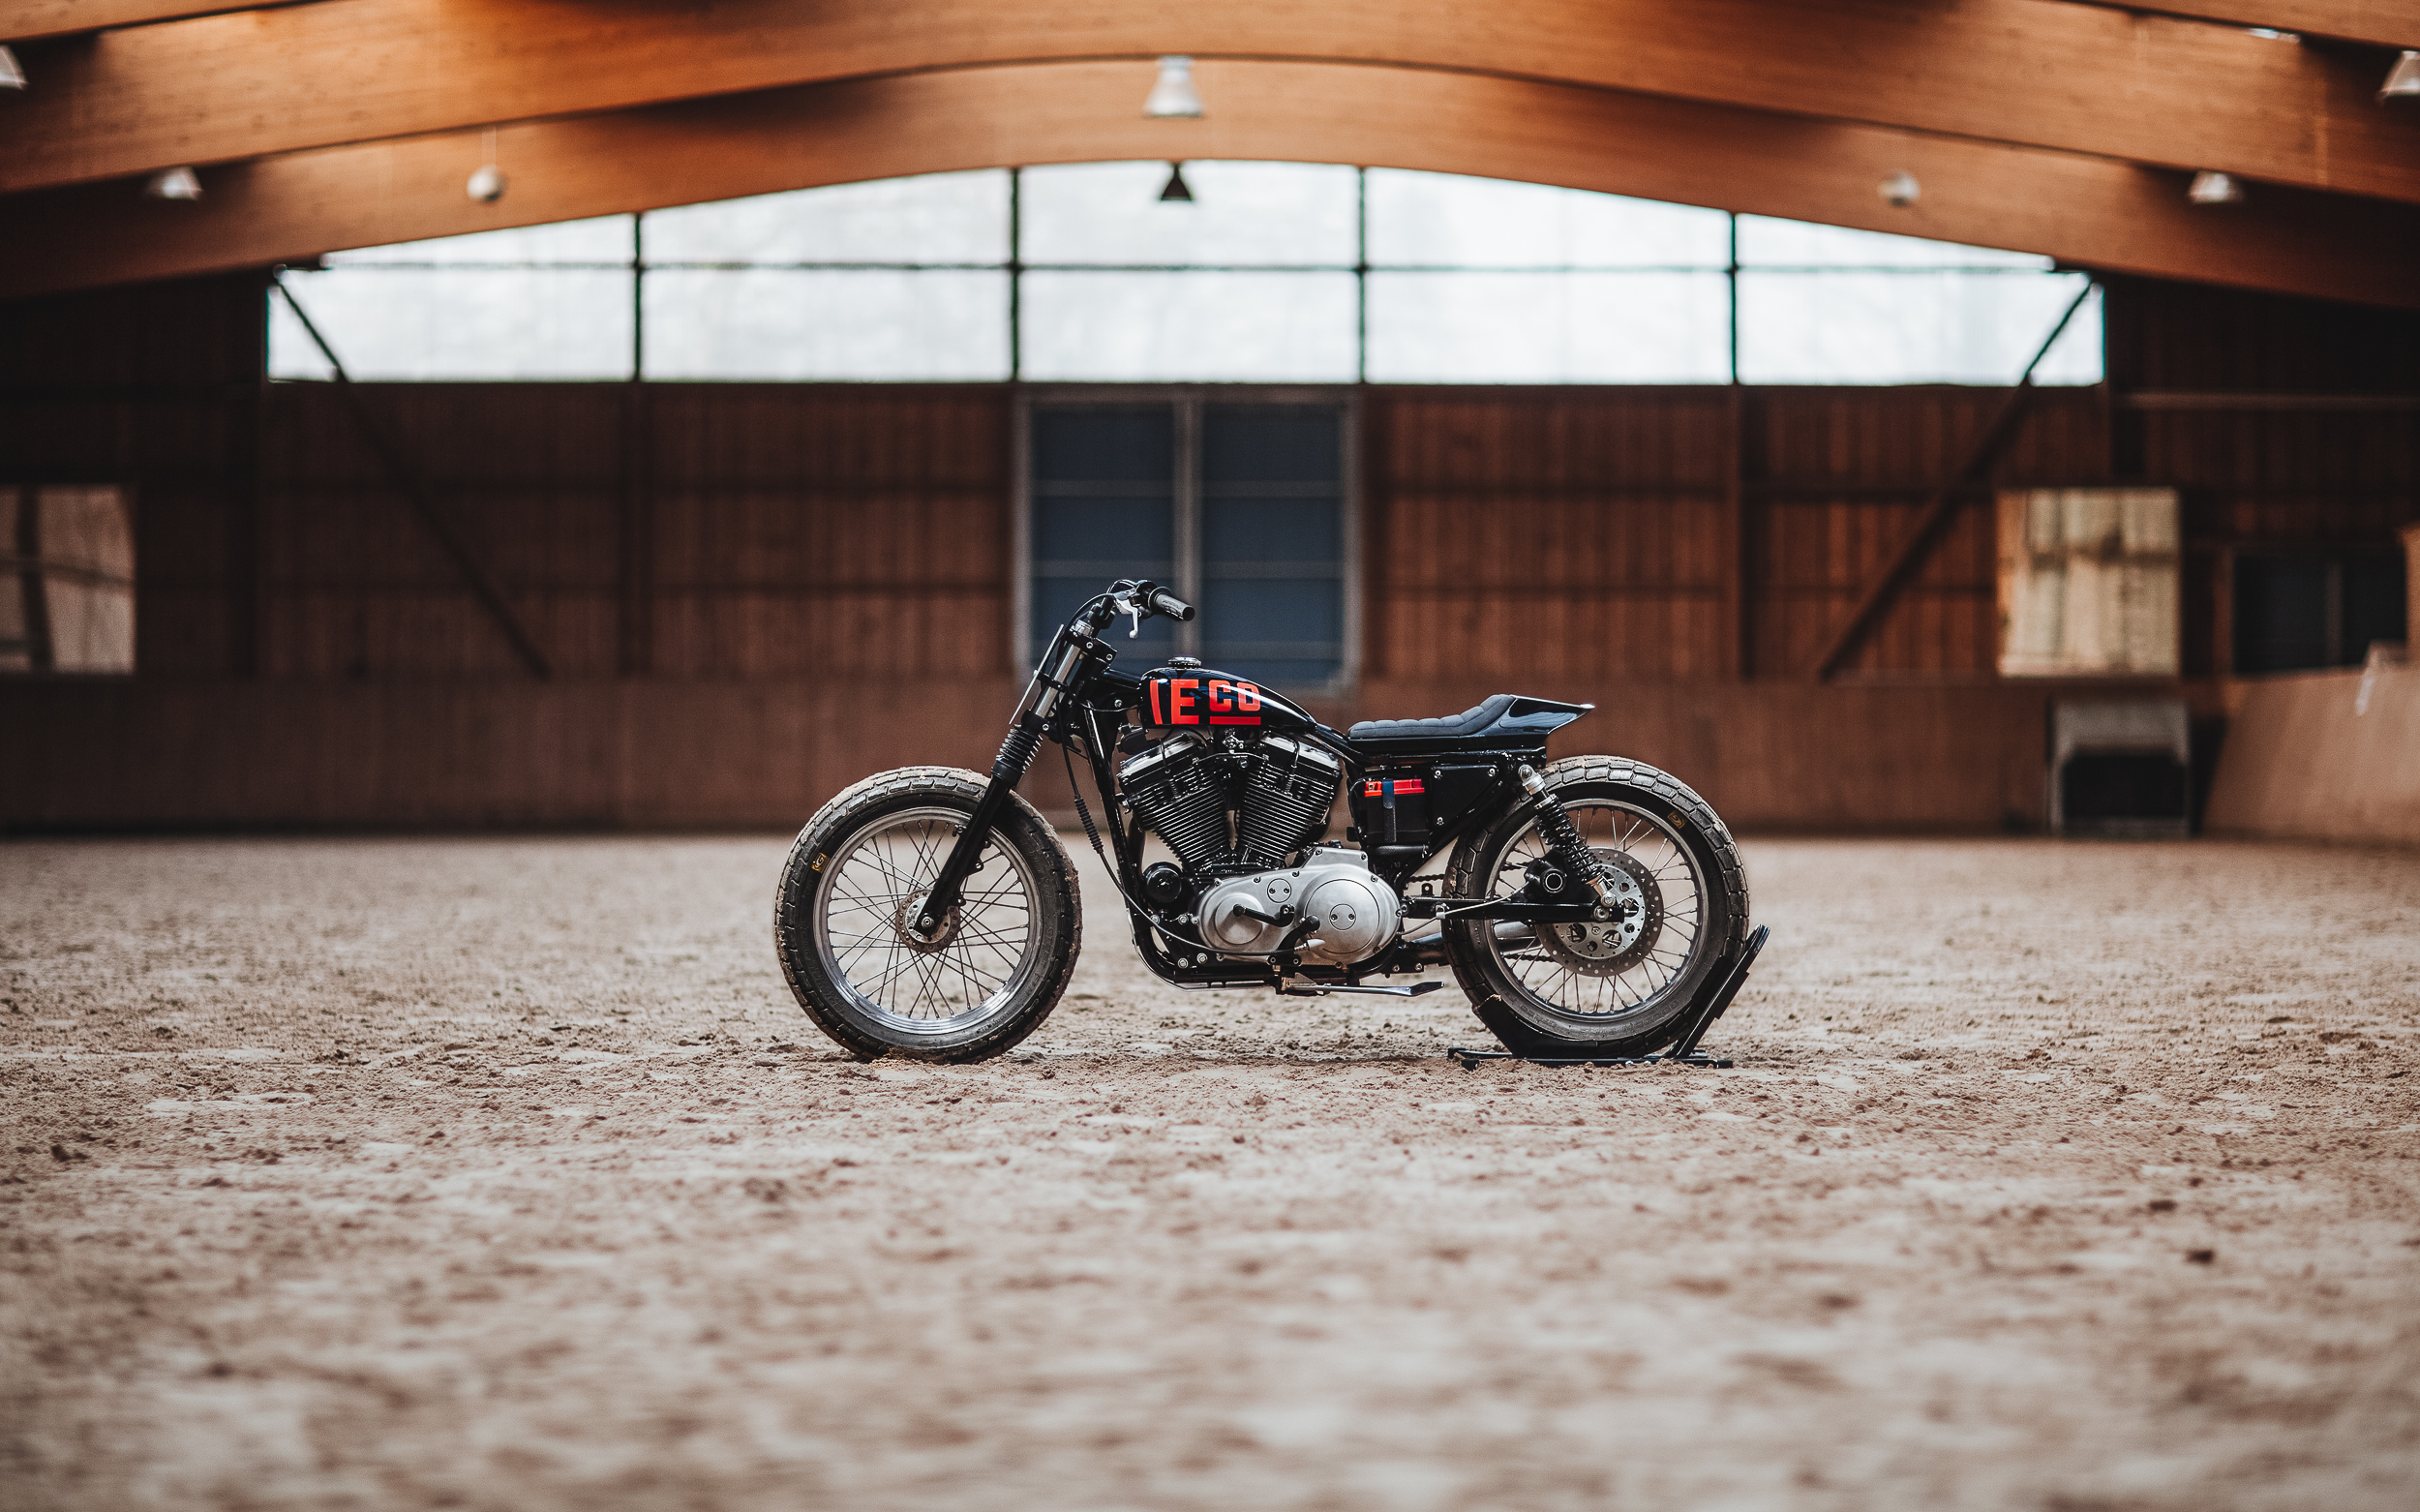 1991 Harley-Davidson Sportster XLH 883 Tasmanian Devil from Hookie Co.